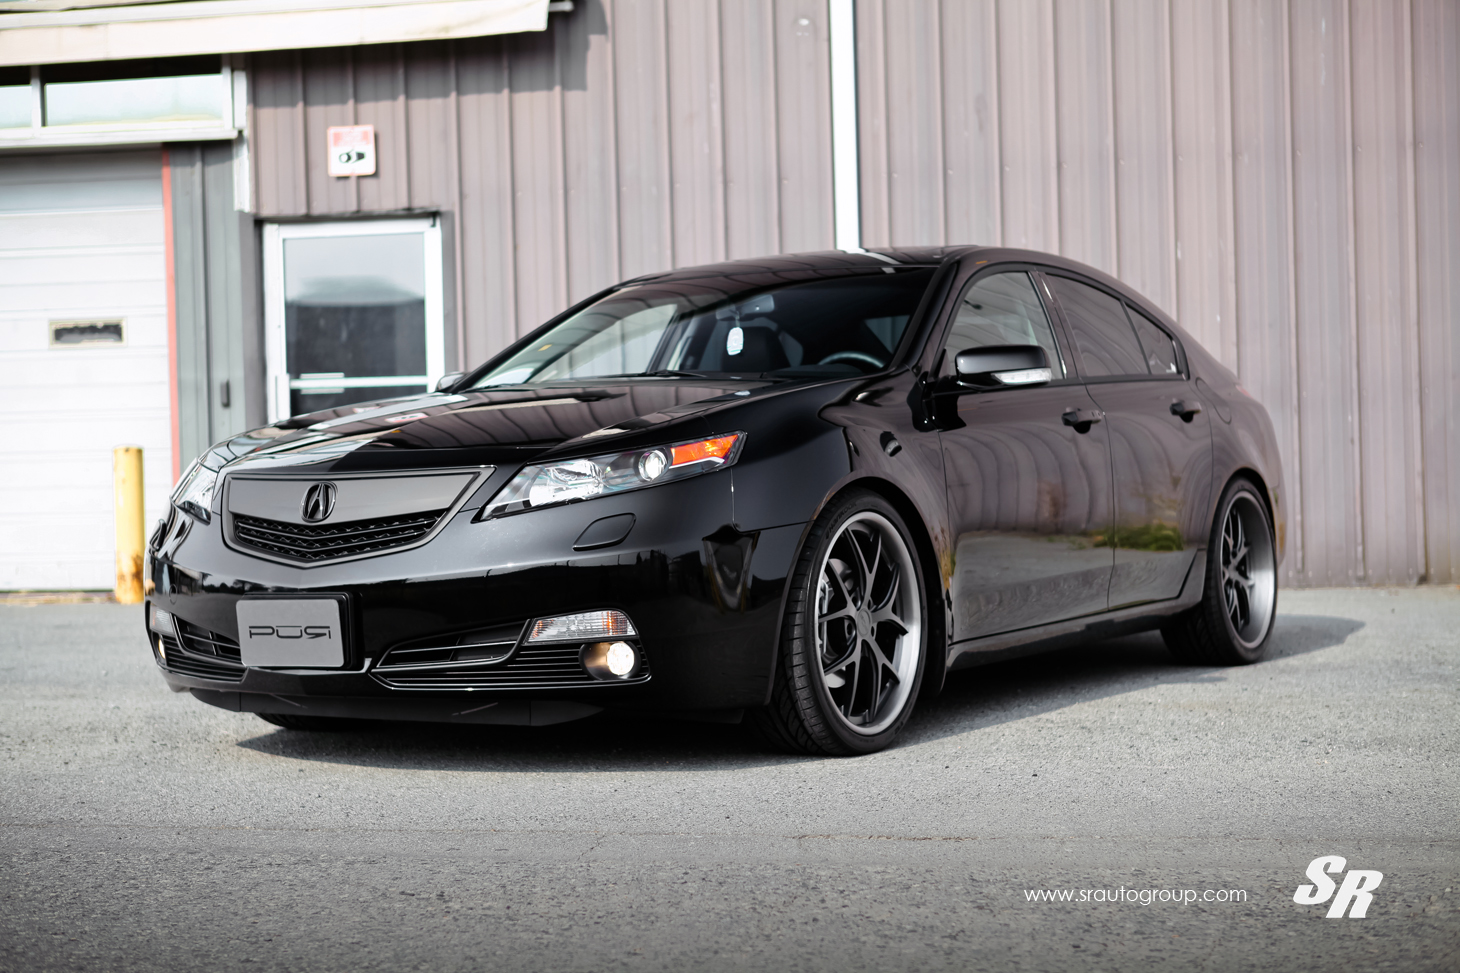 acura tl images #9